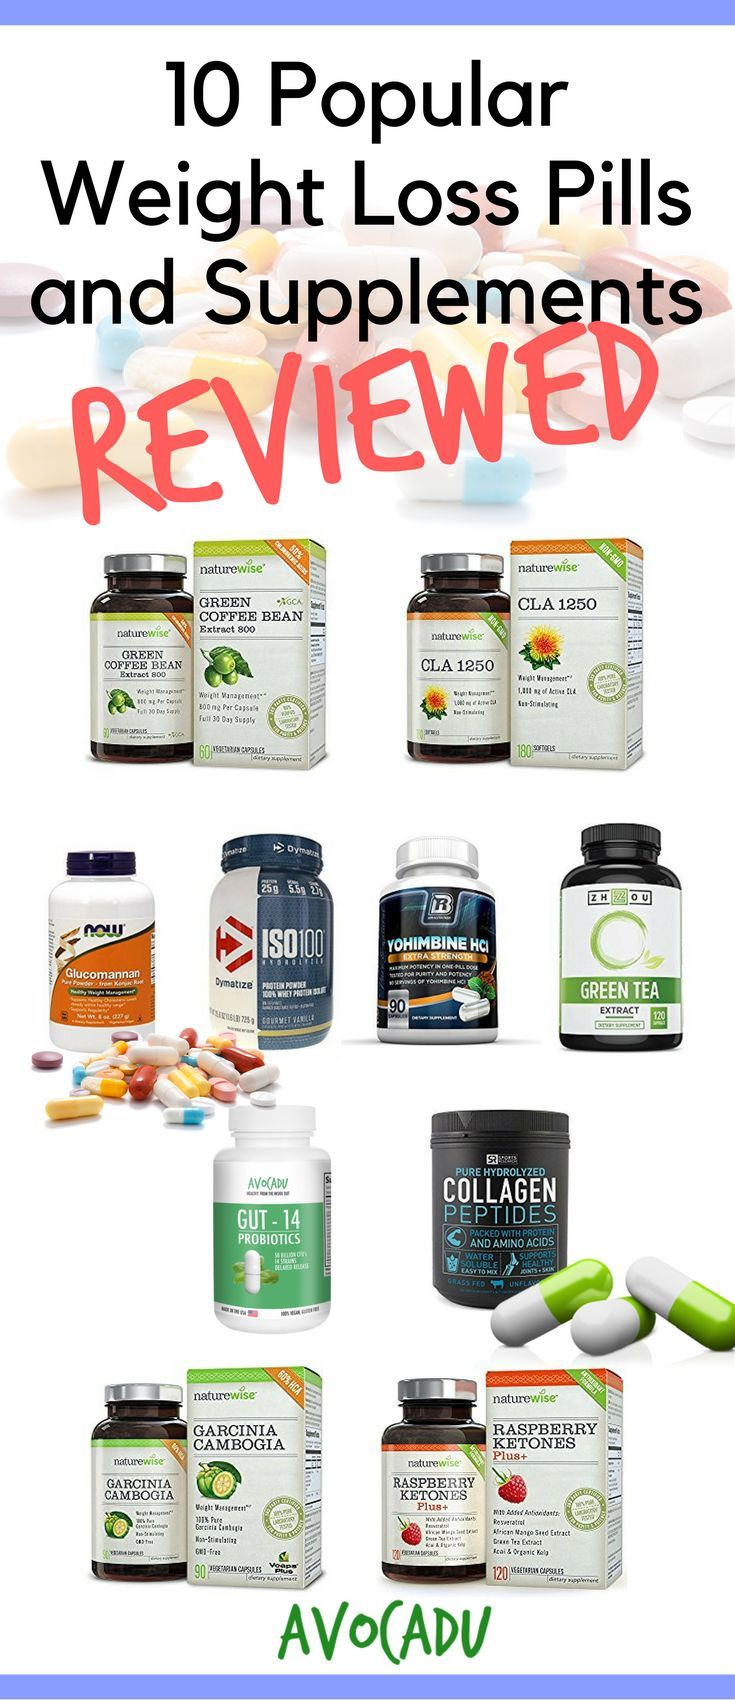 10 popular weight loss pills and supplements reviewed | avocadu